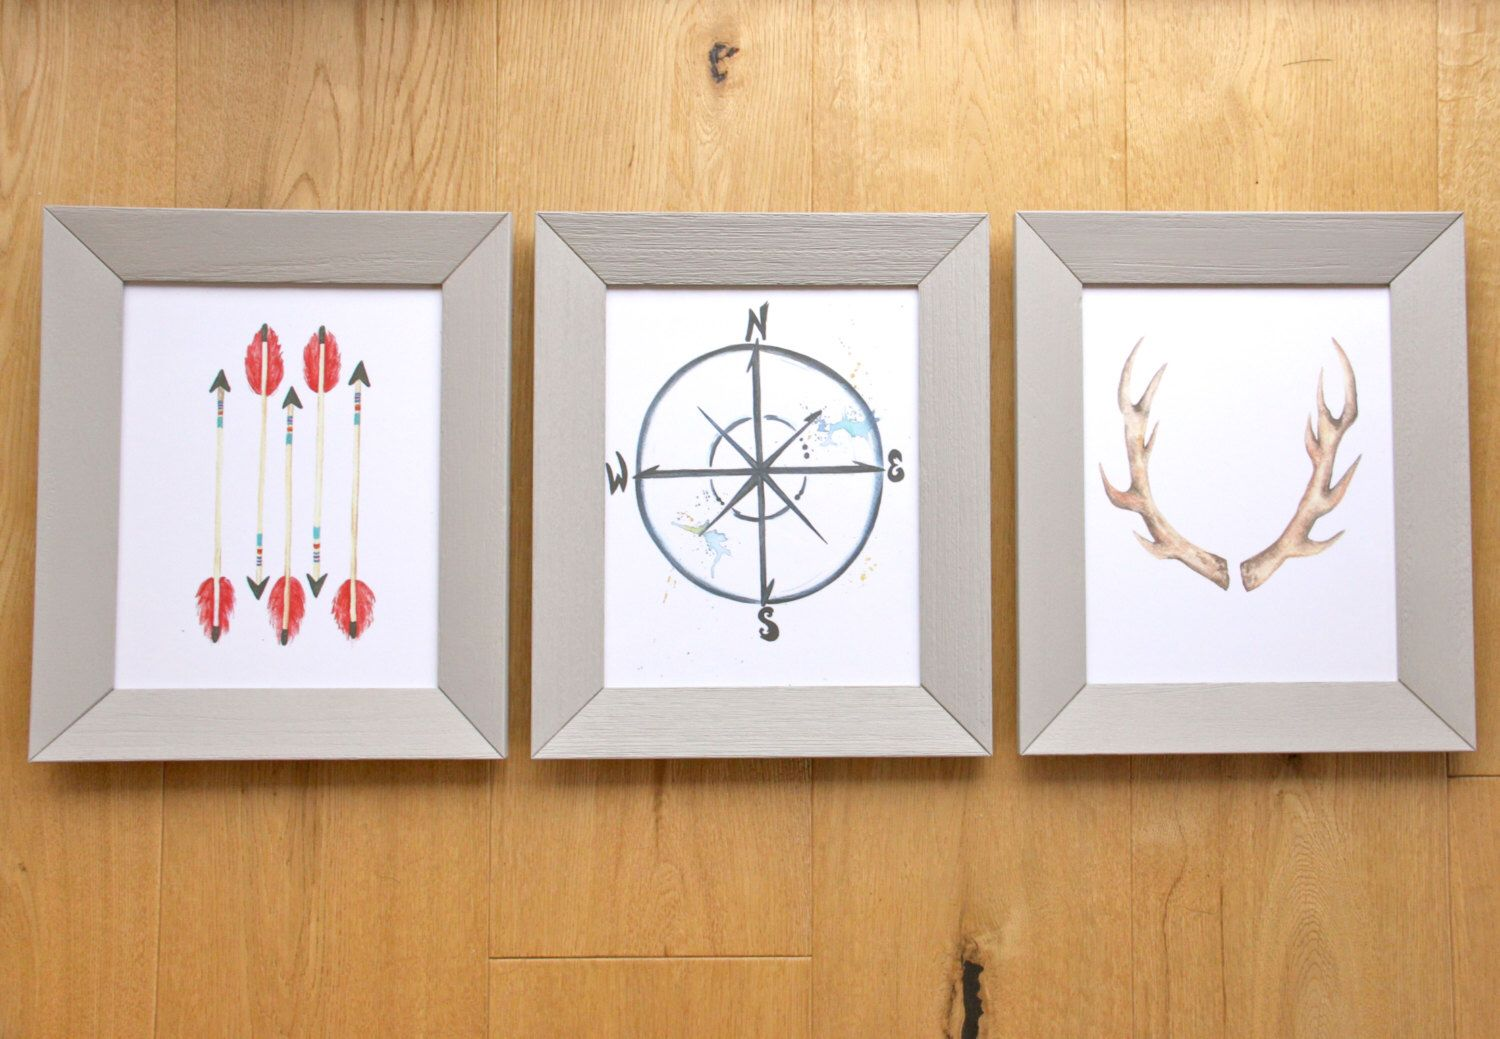 Wild World Nursery,kids room, boys, Set of 3 Original Art Prints, outdoors, hunting, antlers, arrows, woods by LittleFellaPrints on Etsy https://www.etsy.com/listing/251789398/wild-world-set-of-3-original-art-prints